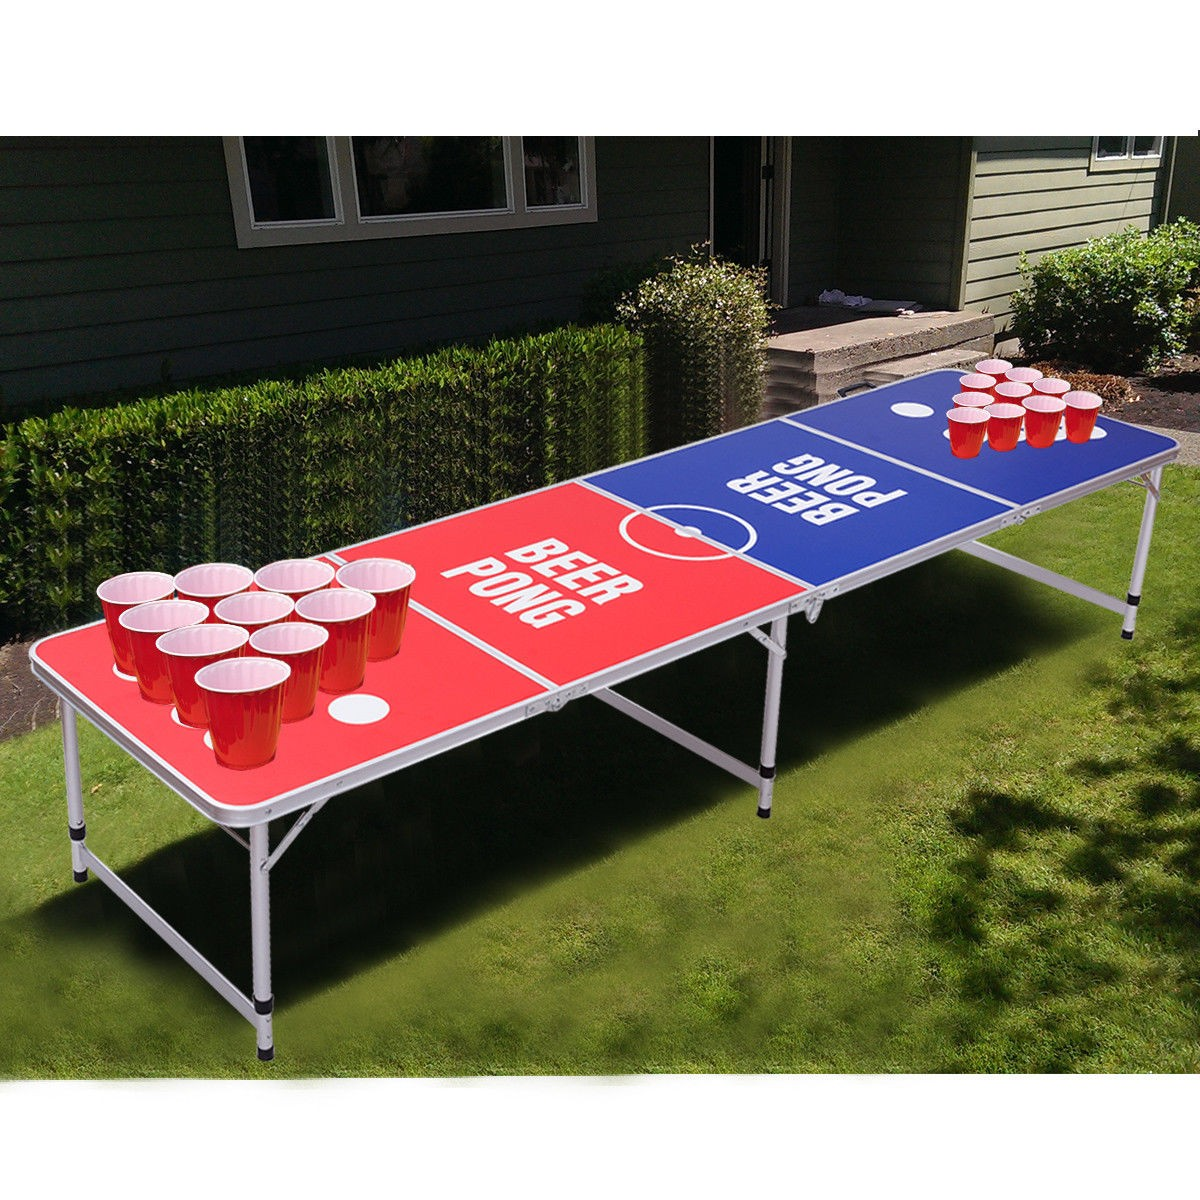 8 ft indoor outdoor portable folding beer pong table by choice rh bychoiceproducts com beer pong table dimensions beer pong table length